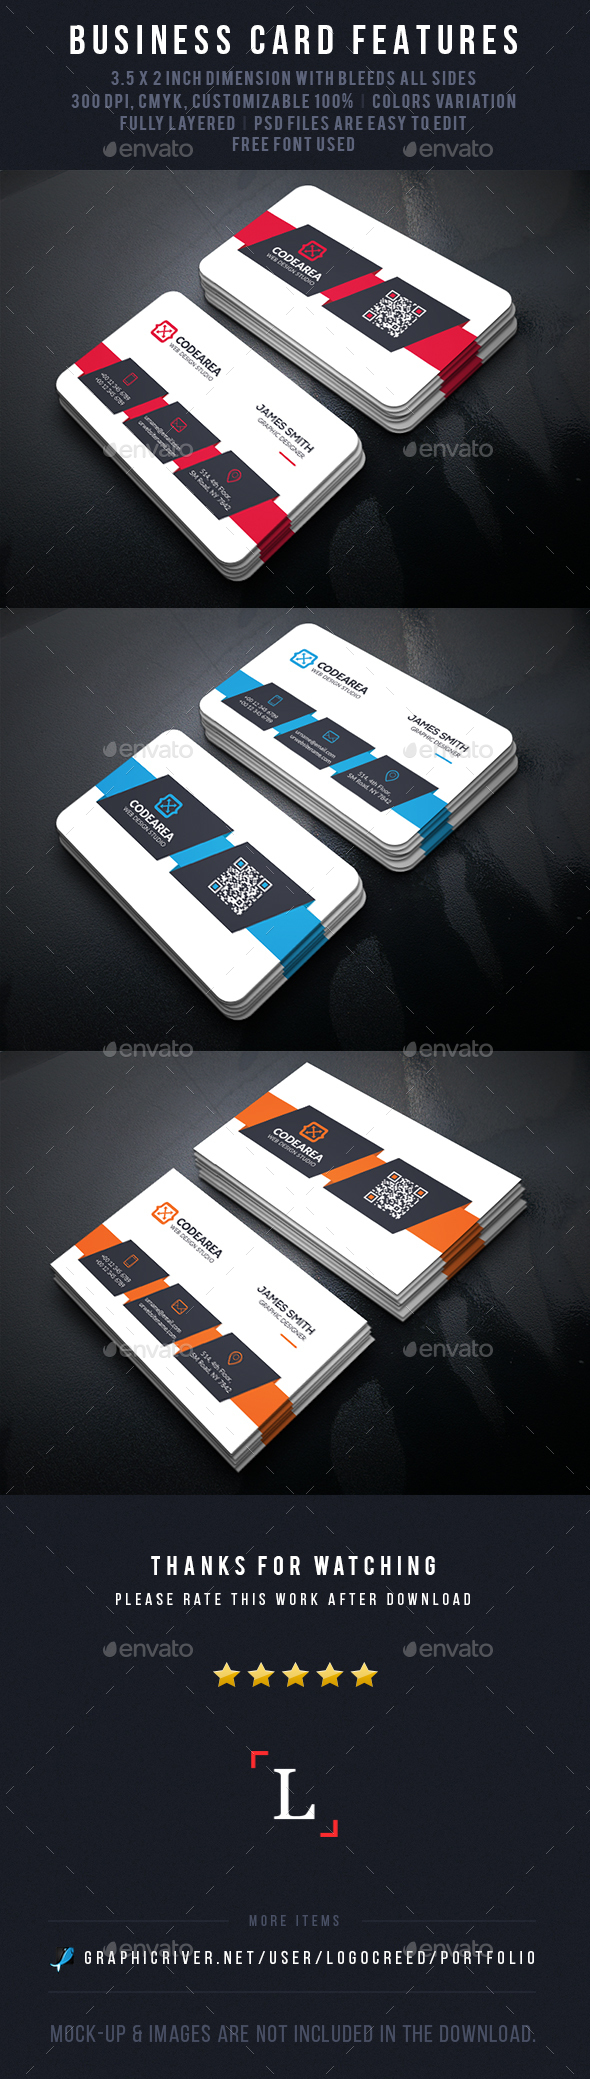 Reality Corporate Business Card - Business Cards Print Templates